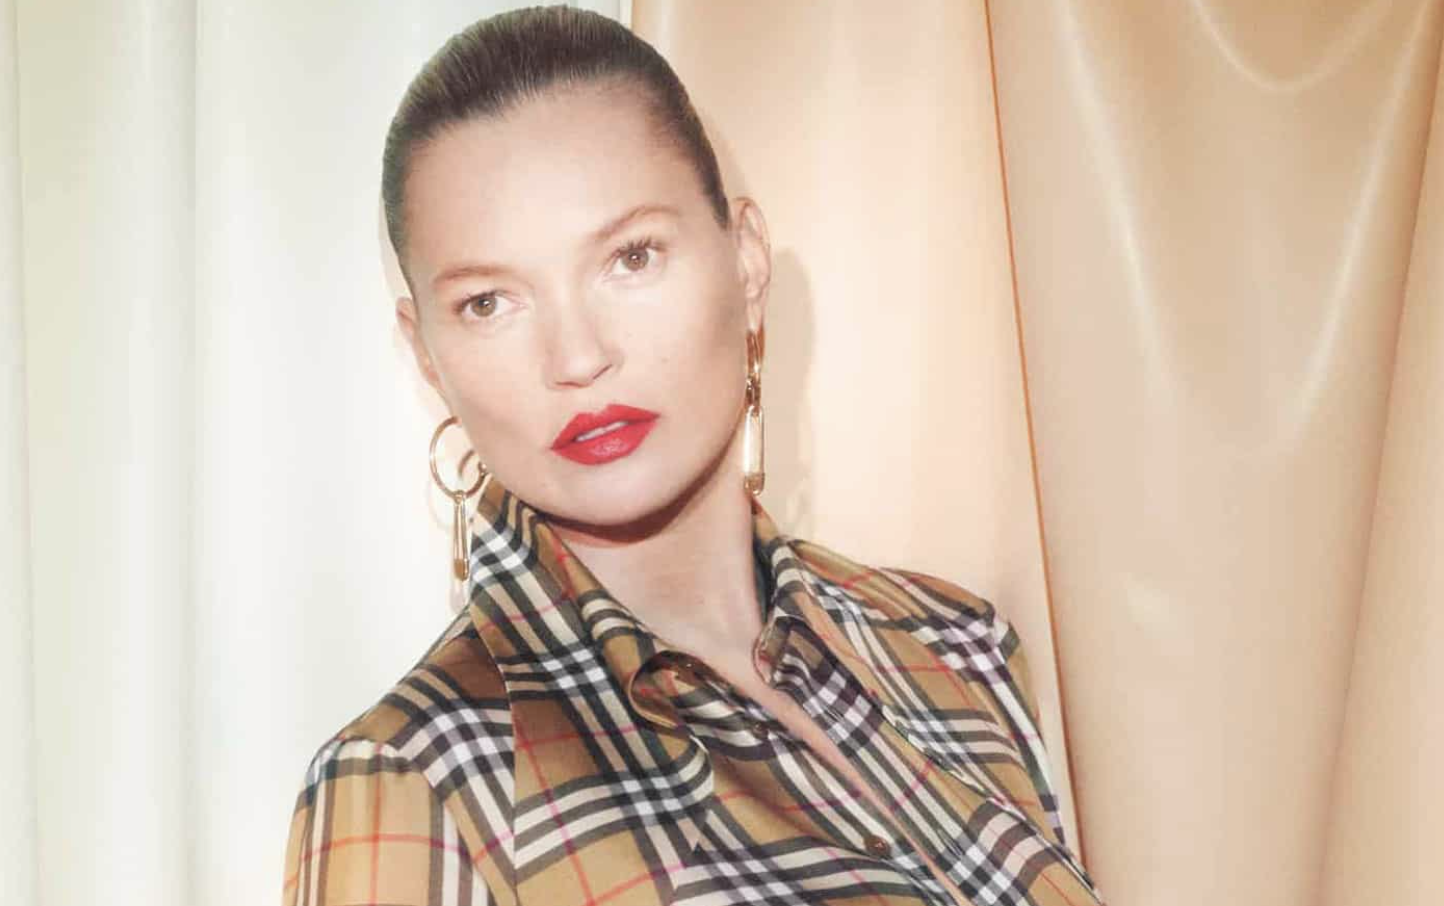 KATE MOSS ON MAKING FASHION HISTORY -